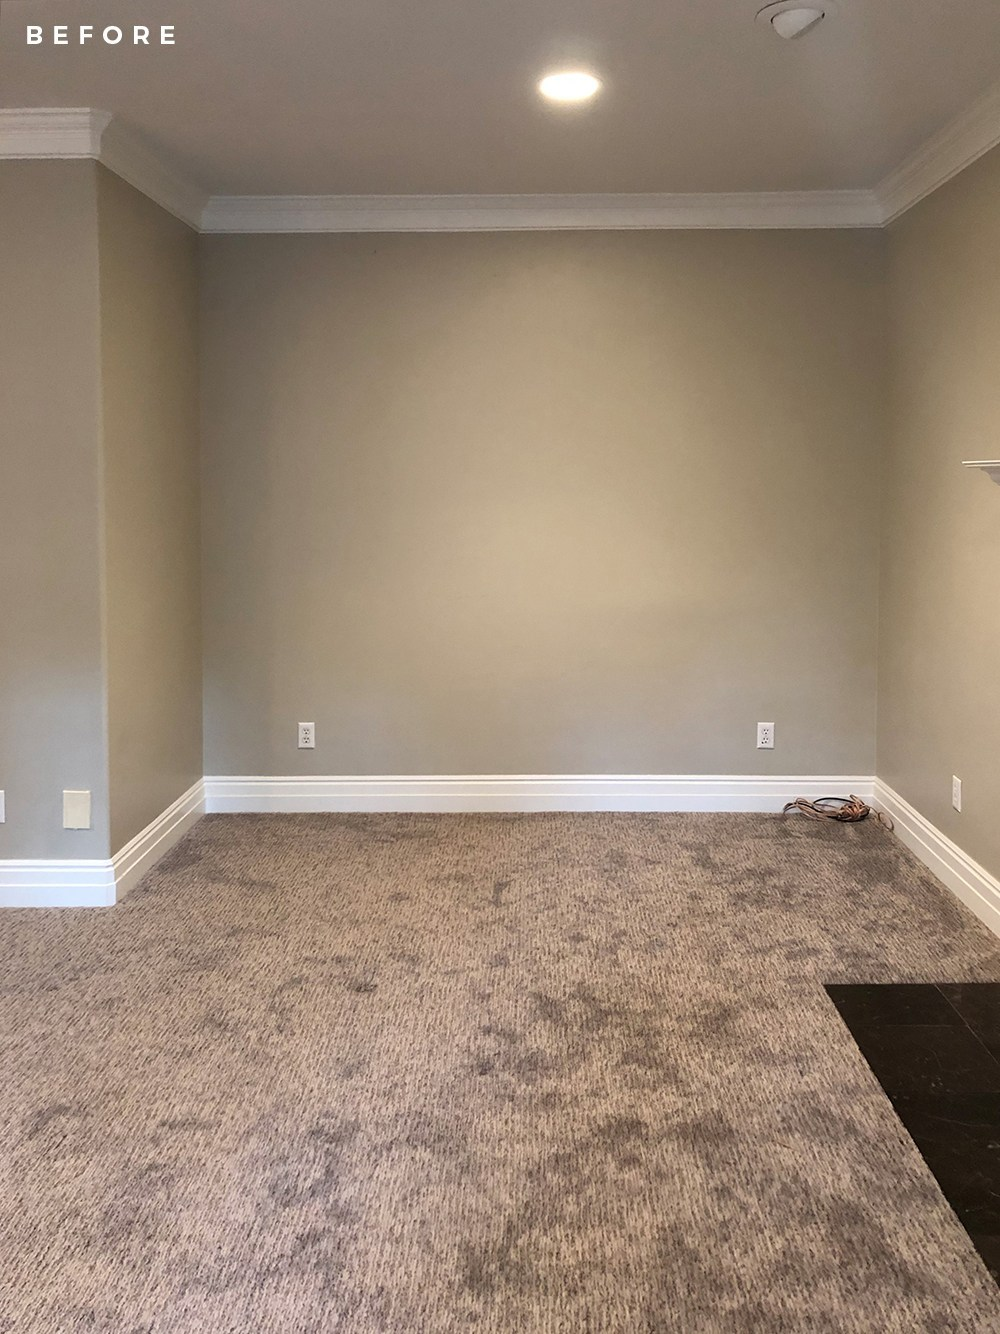 Formal Living Room Updates - roomfortuesday.com